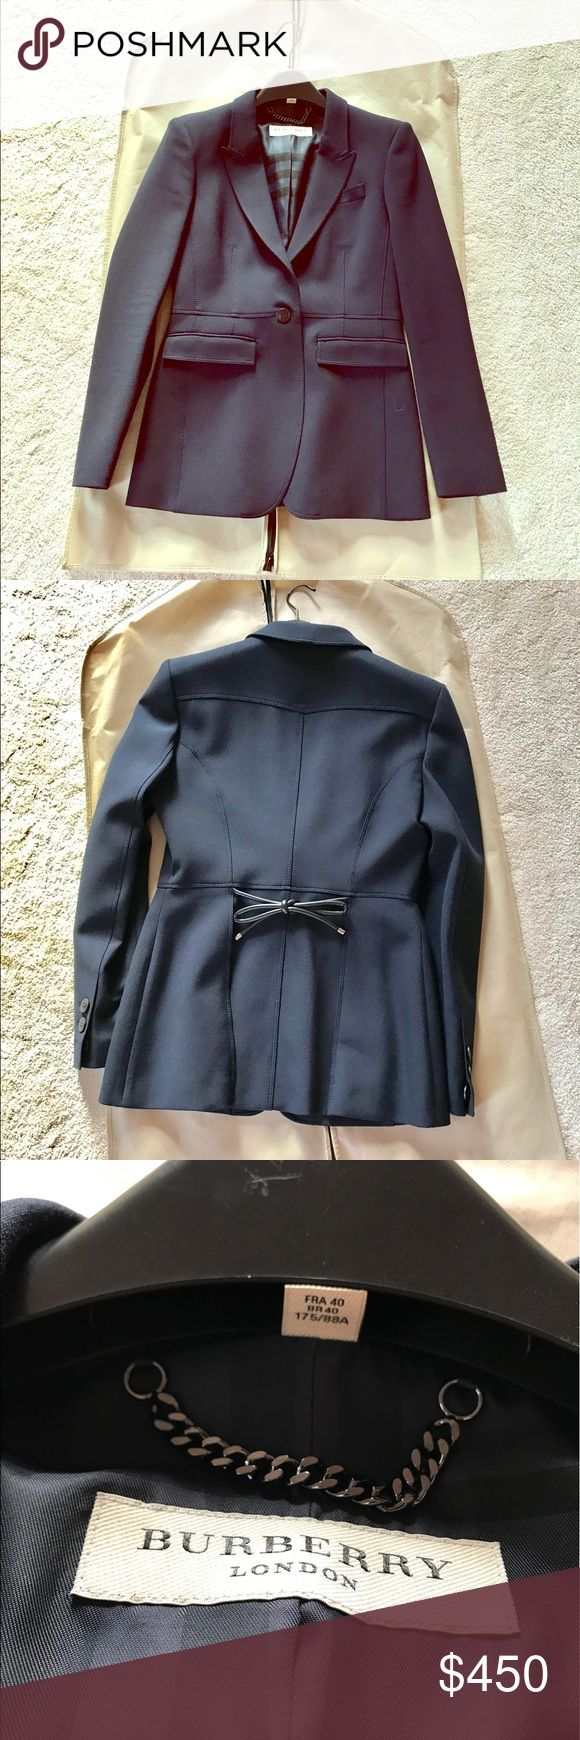 Burberry Bow Tie waist blazer Very stylish and good quality! Really love it when I was slimmer!! Took very good of it, storage in dust bag carefully! You can wearing either in formal or casual! Perfect looking! It's black but kinda navy. Burberry Jackets & Coats Blazers